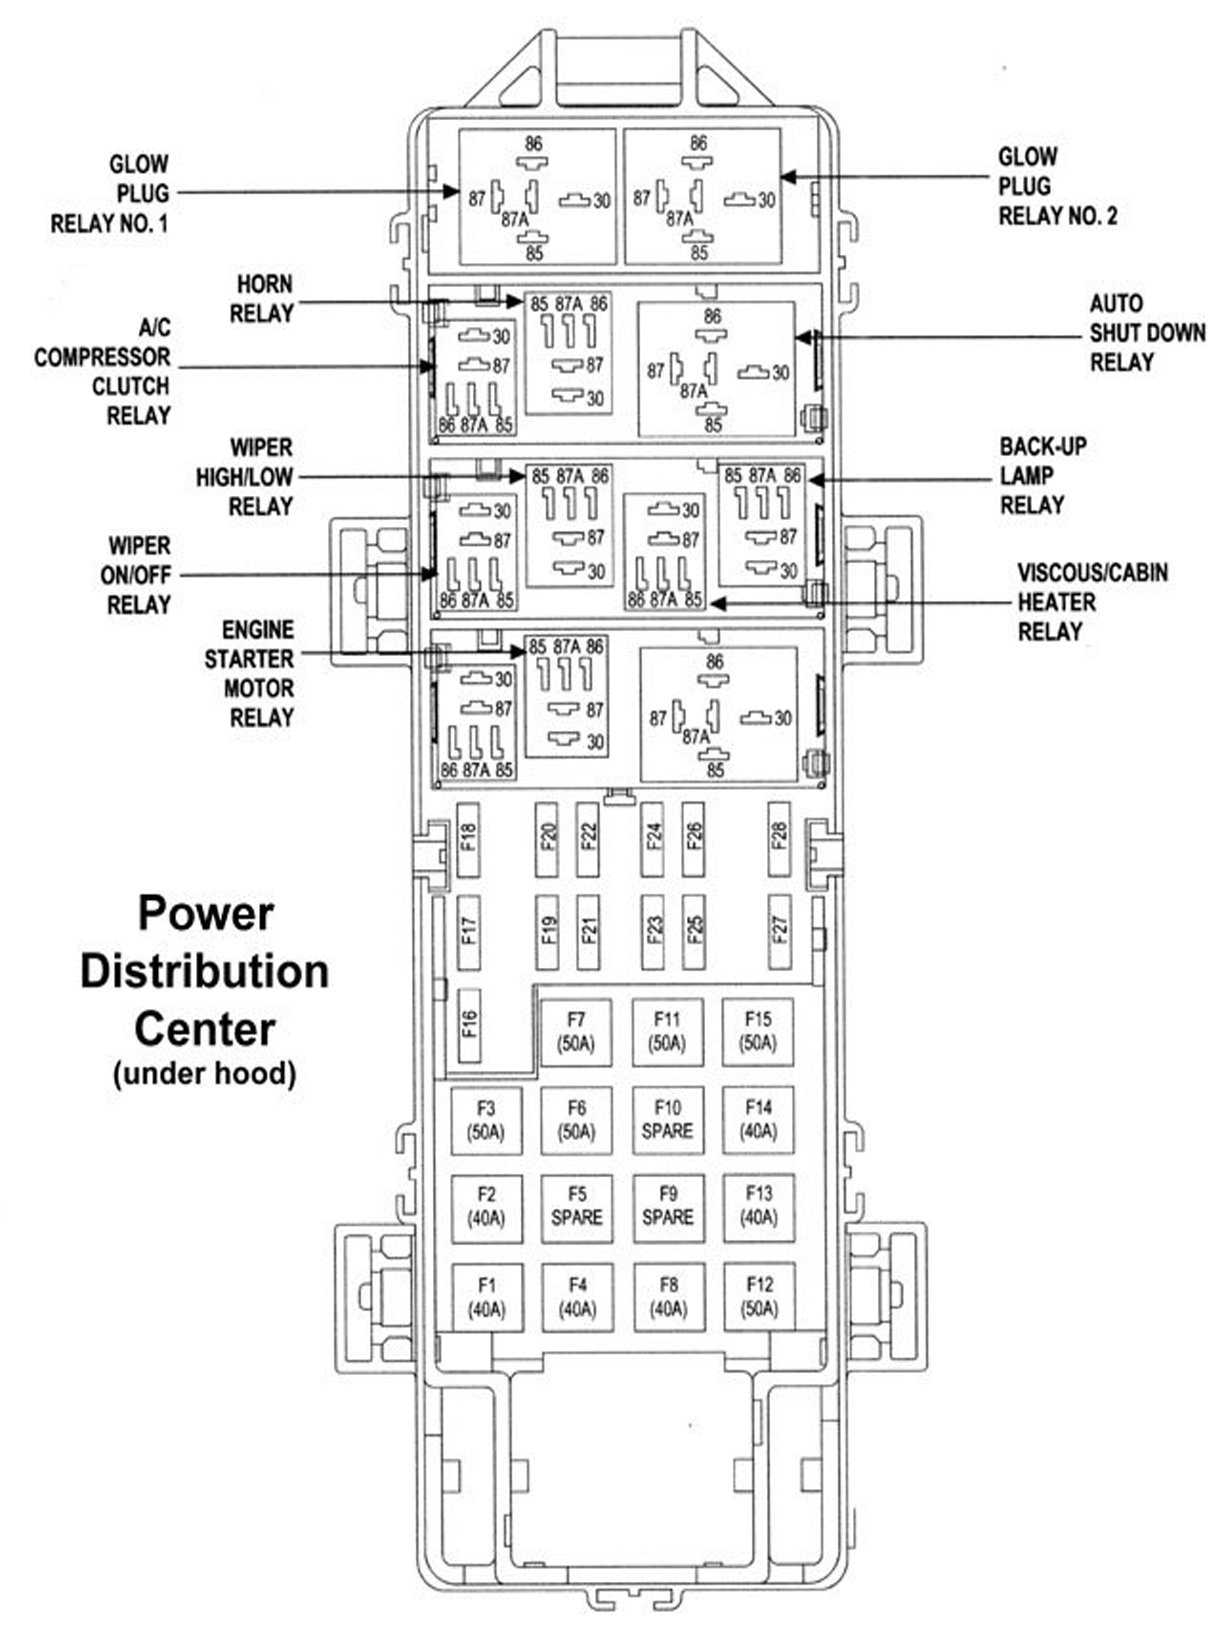 1999 jeep grand cherokee fuse box diagram 1999 jeep grand cherokee fuse box manual